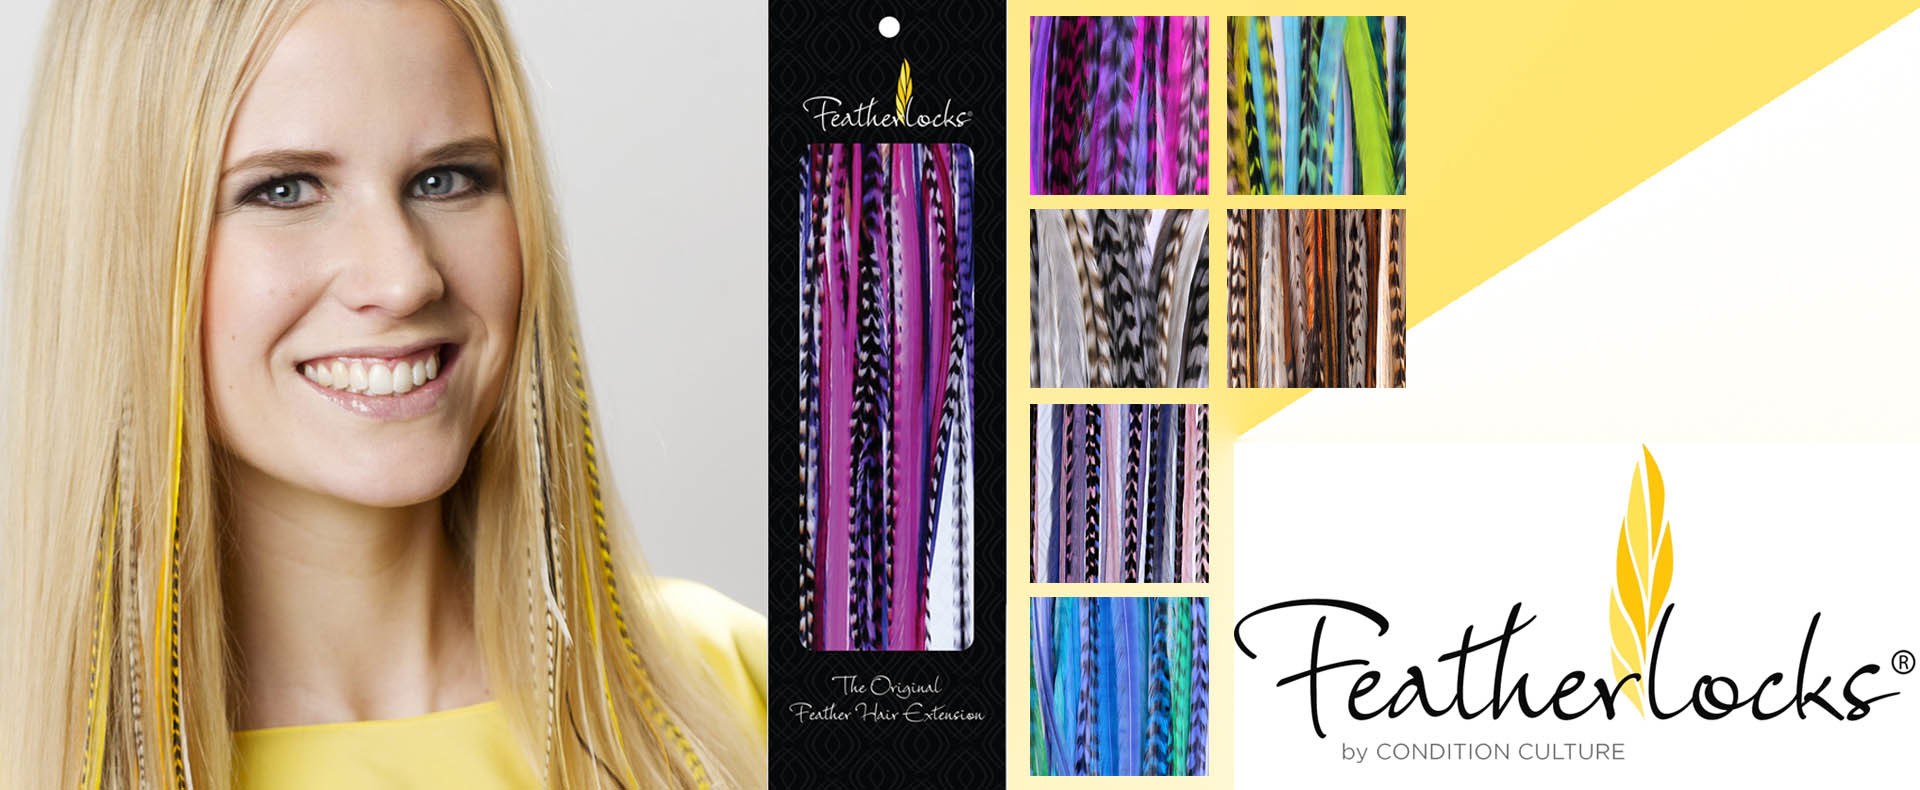 Feder-Extensions von Featherlocks (© Great Lengths)